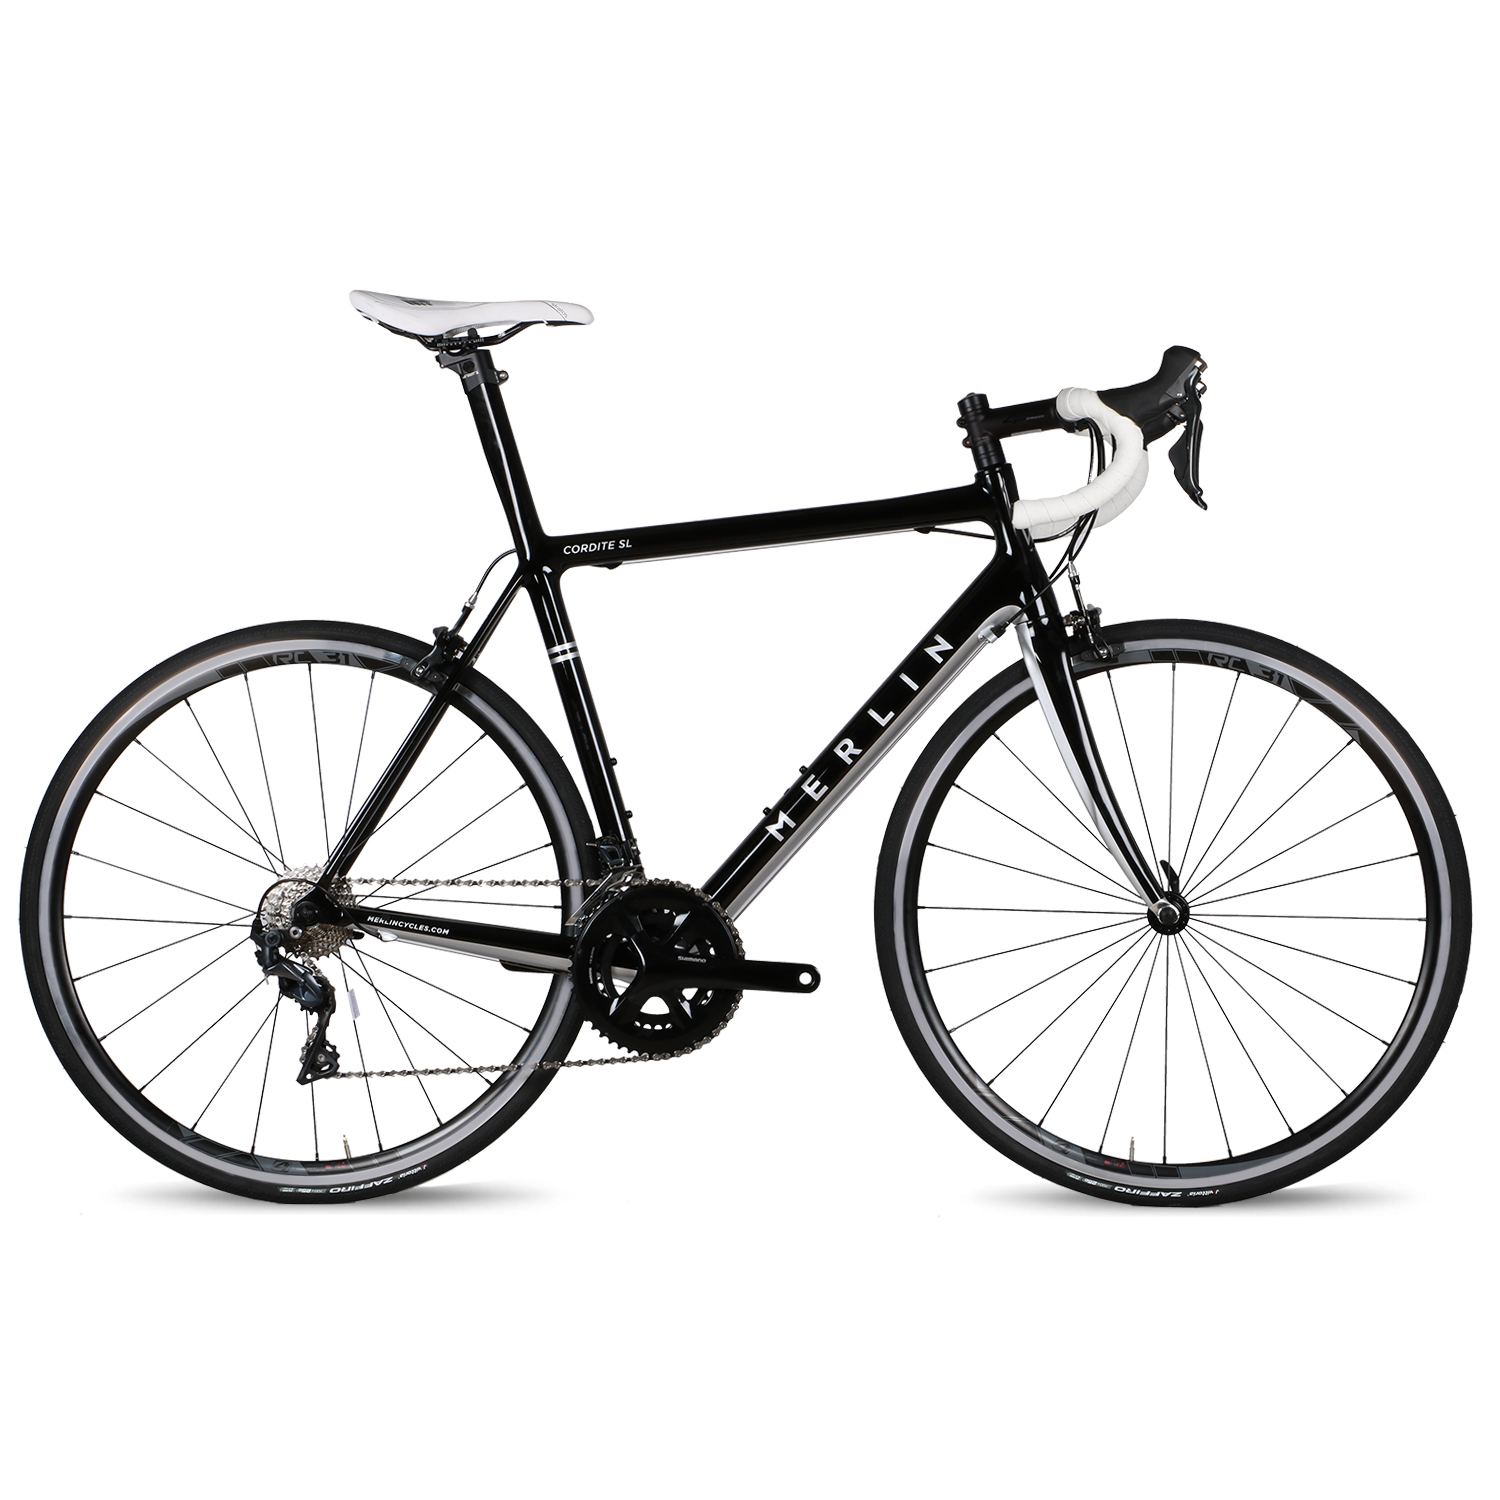 Merlin Cordite SL Ultegra R8000 Mix Carbon Road Bike - 2018